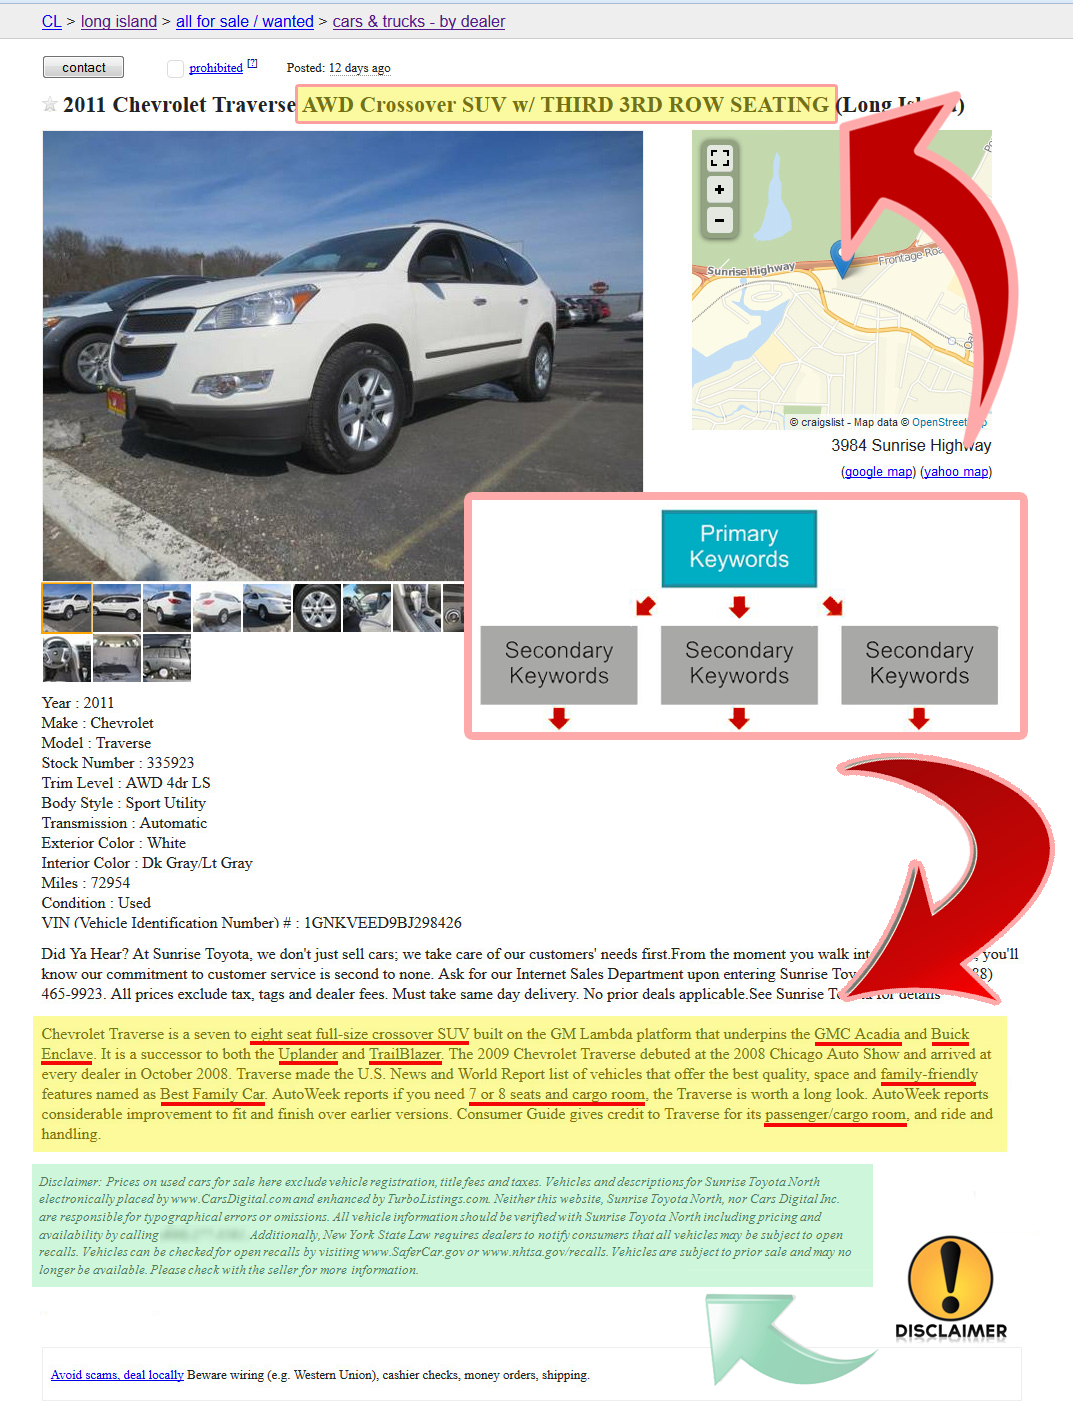 Dealer Craigslist Posting Service Listings For Car Dealers